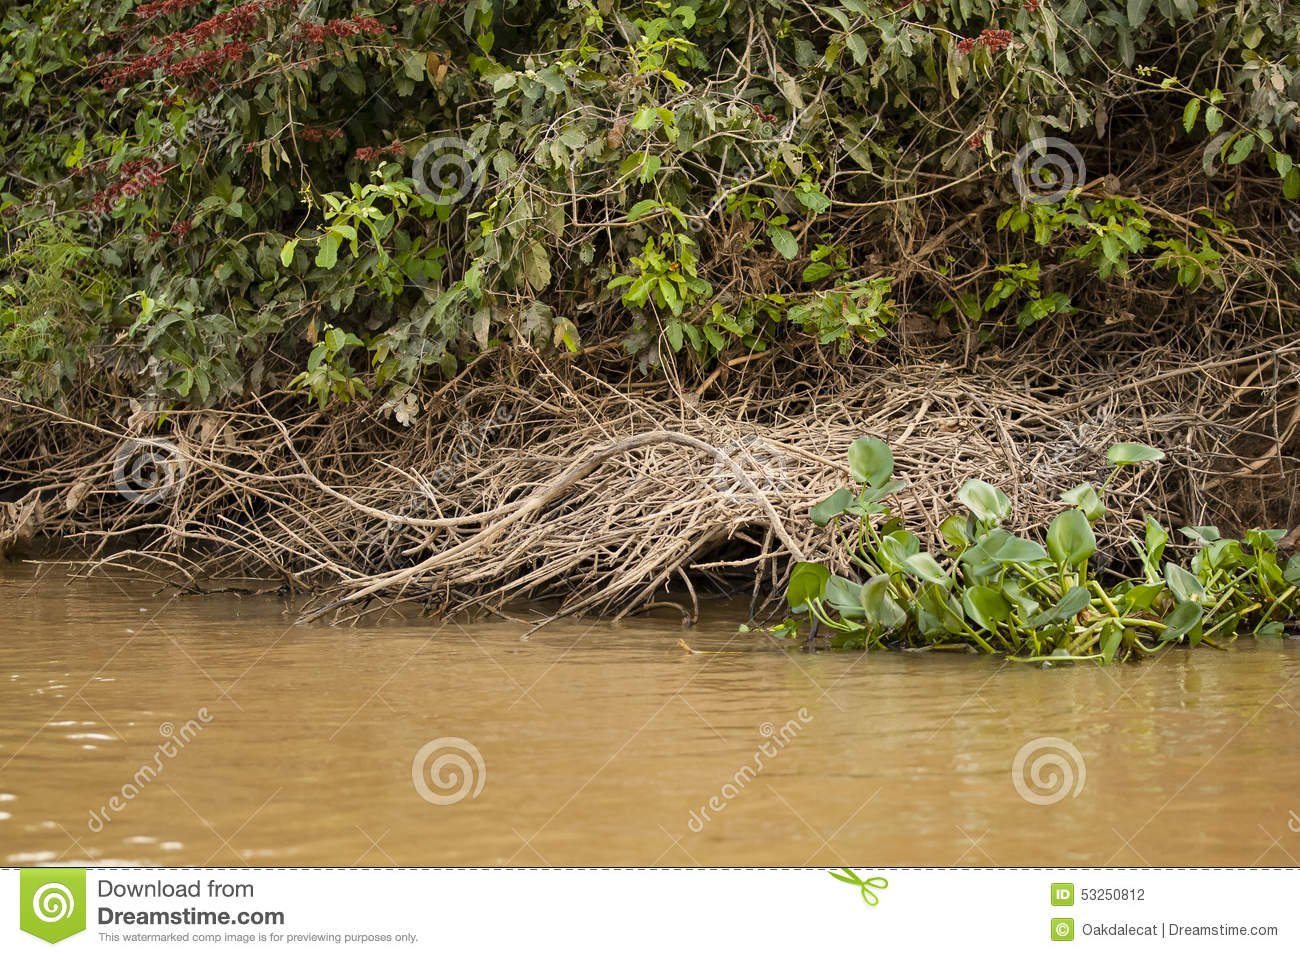 By The Giant Otters With Trampled Vines And Scent Marking not Seen